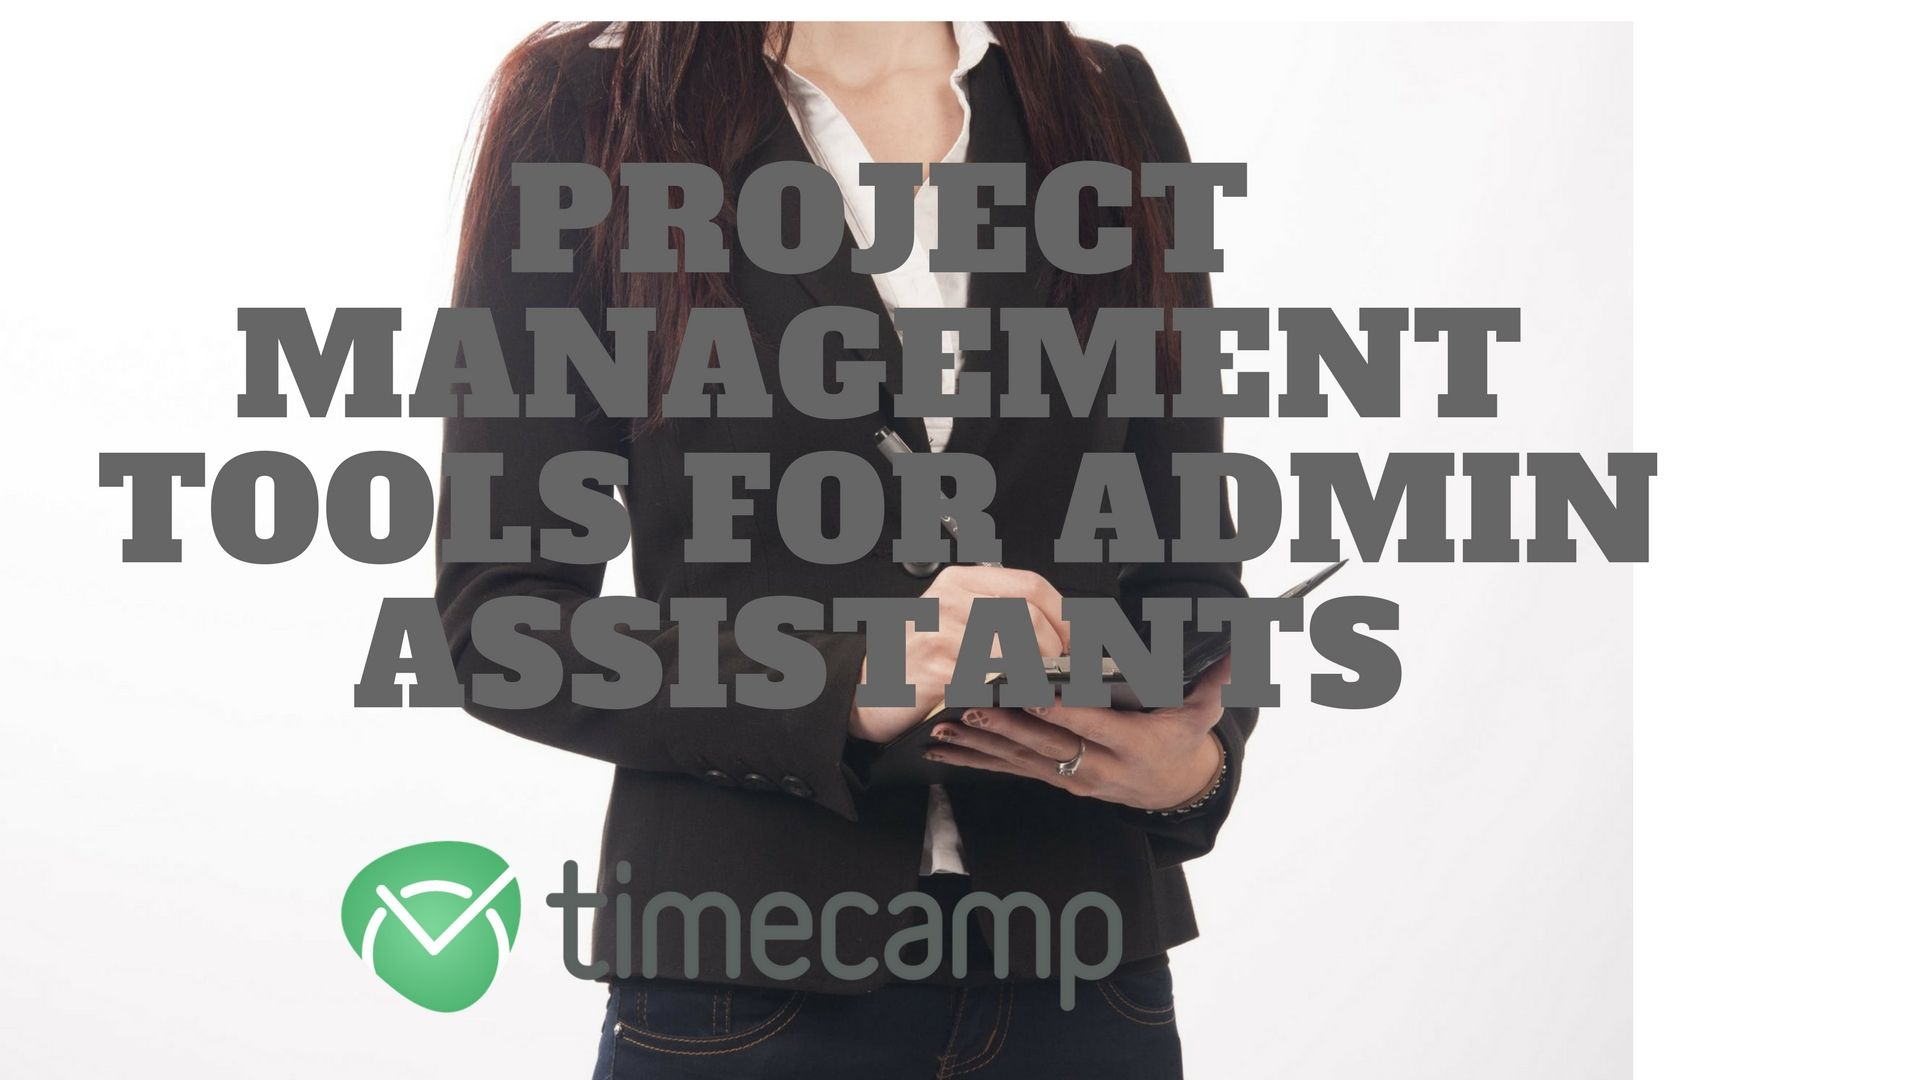 Project Management Tools for Admin Assistants